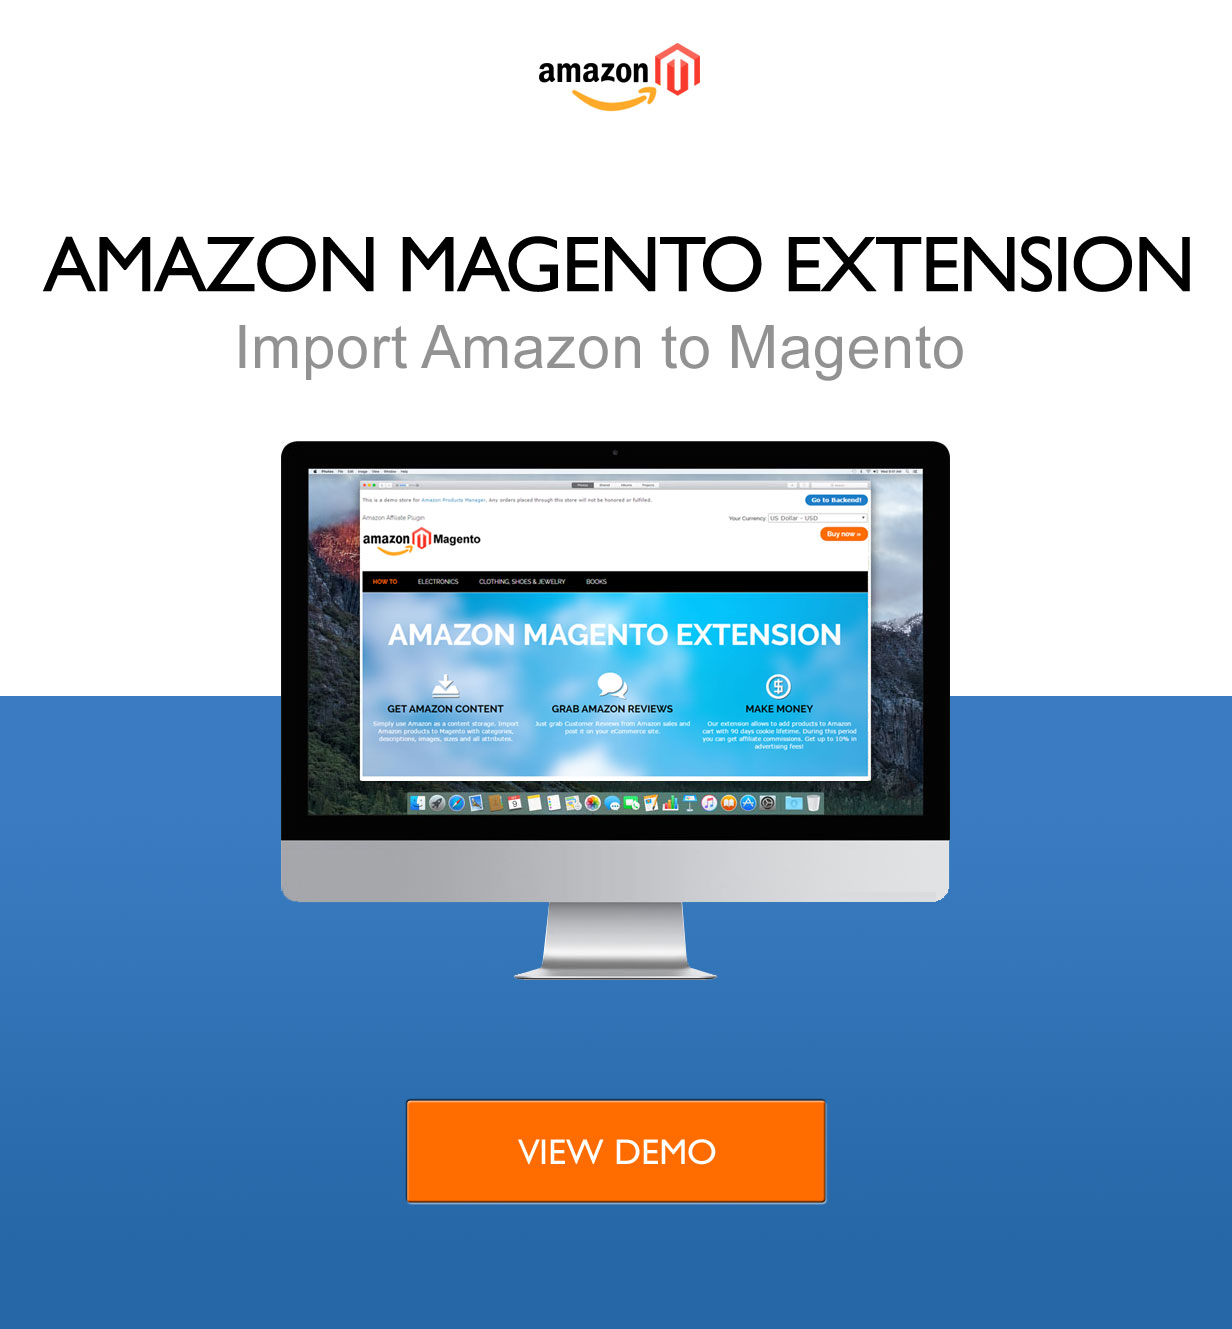 Amazon Magento Extension LIVE DEMO